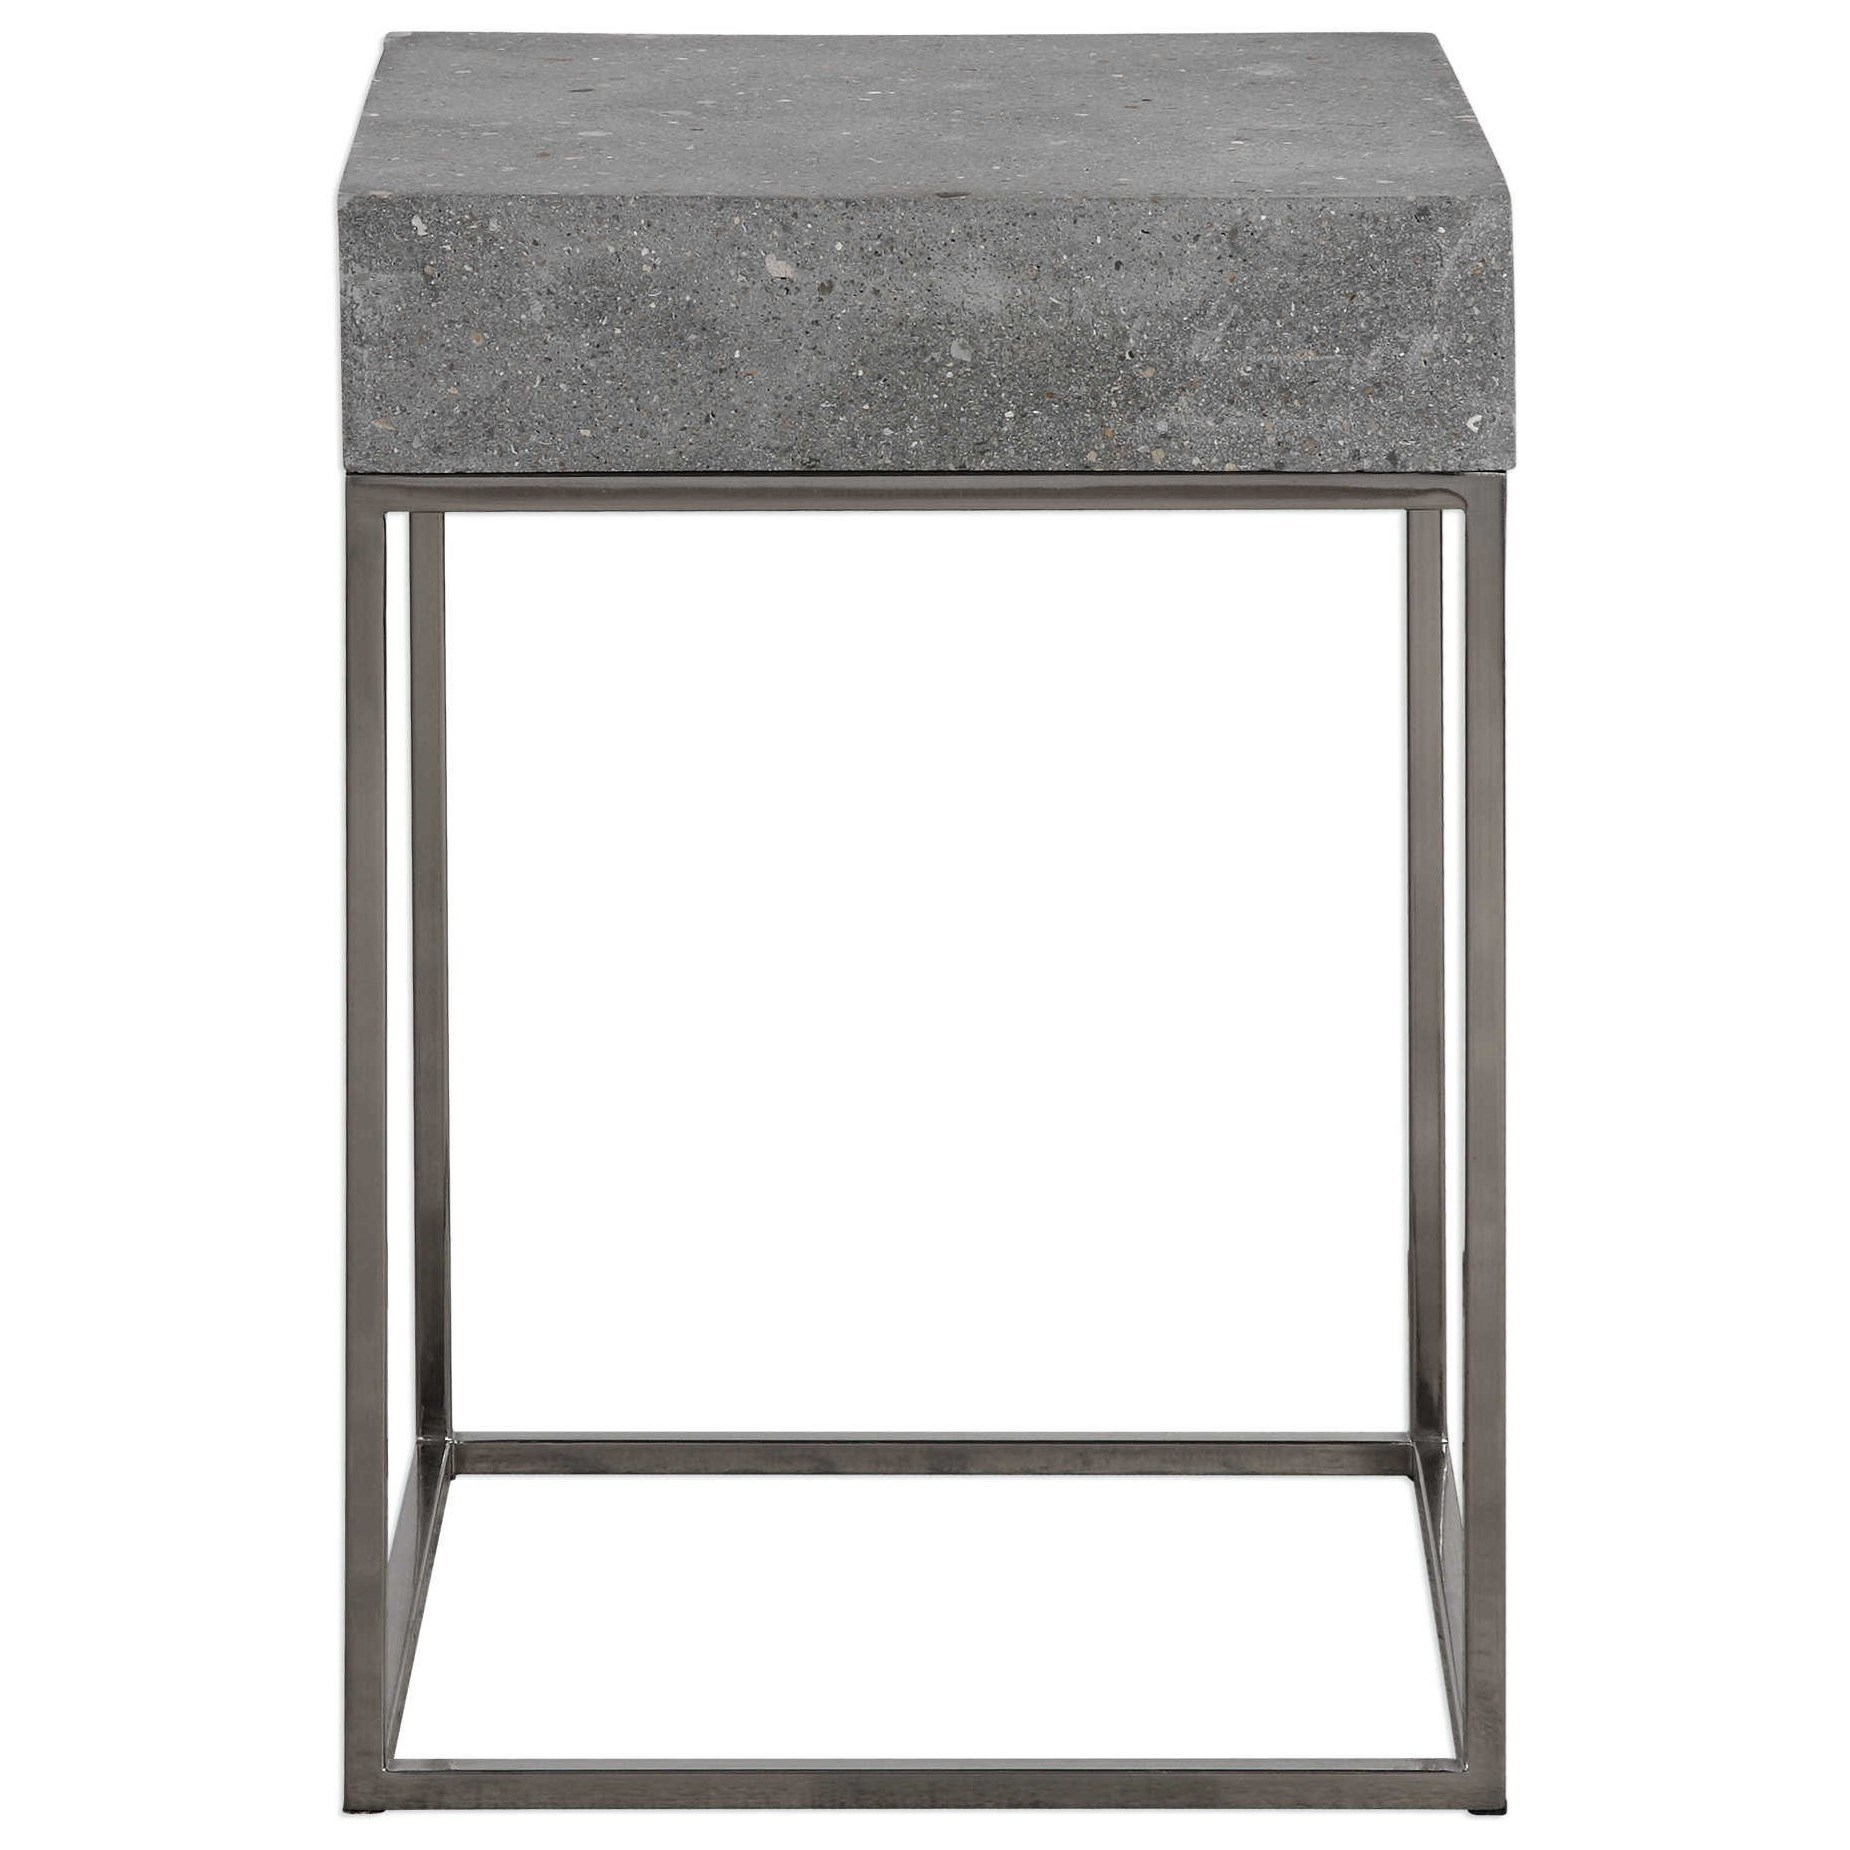 Accent Furniture - Occasional Tables Jude Concrete Accent Table at Bennett's Furniture and Mattresses